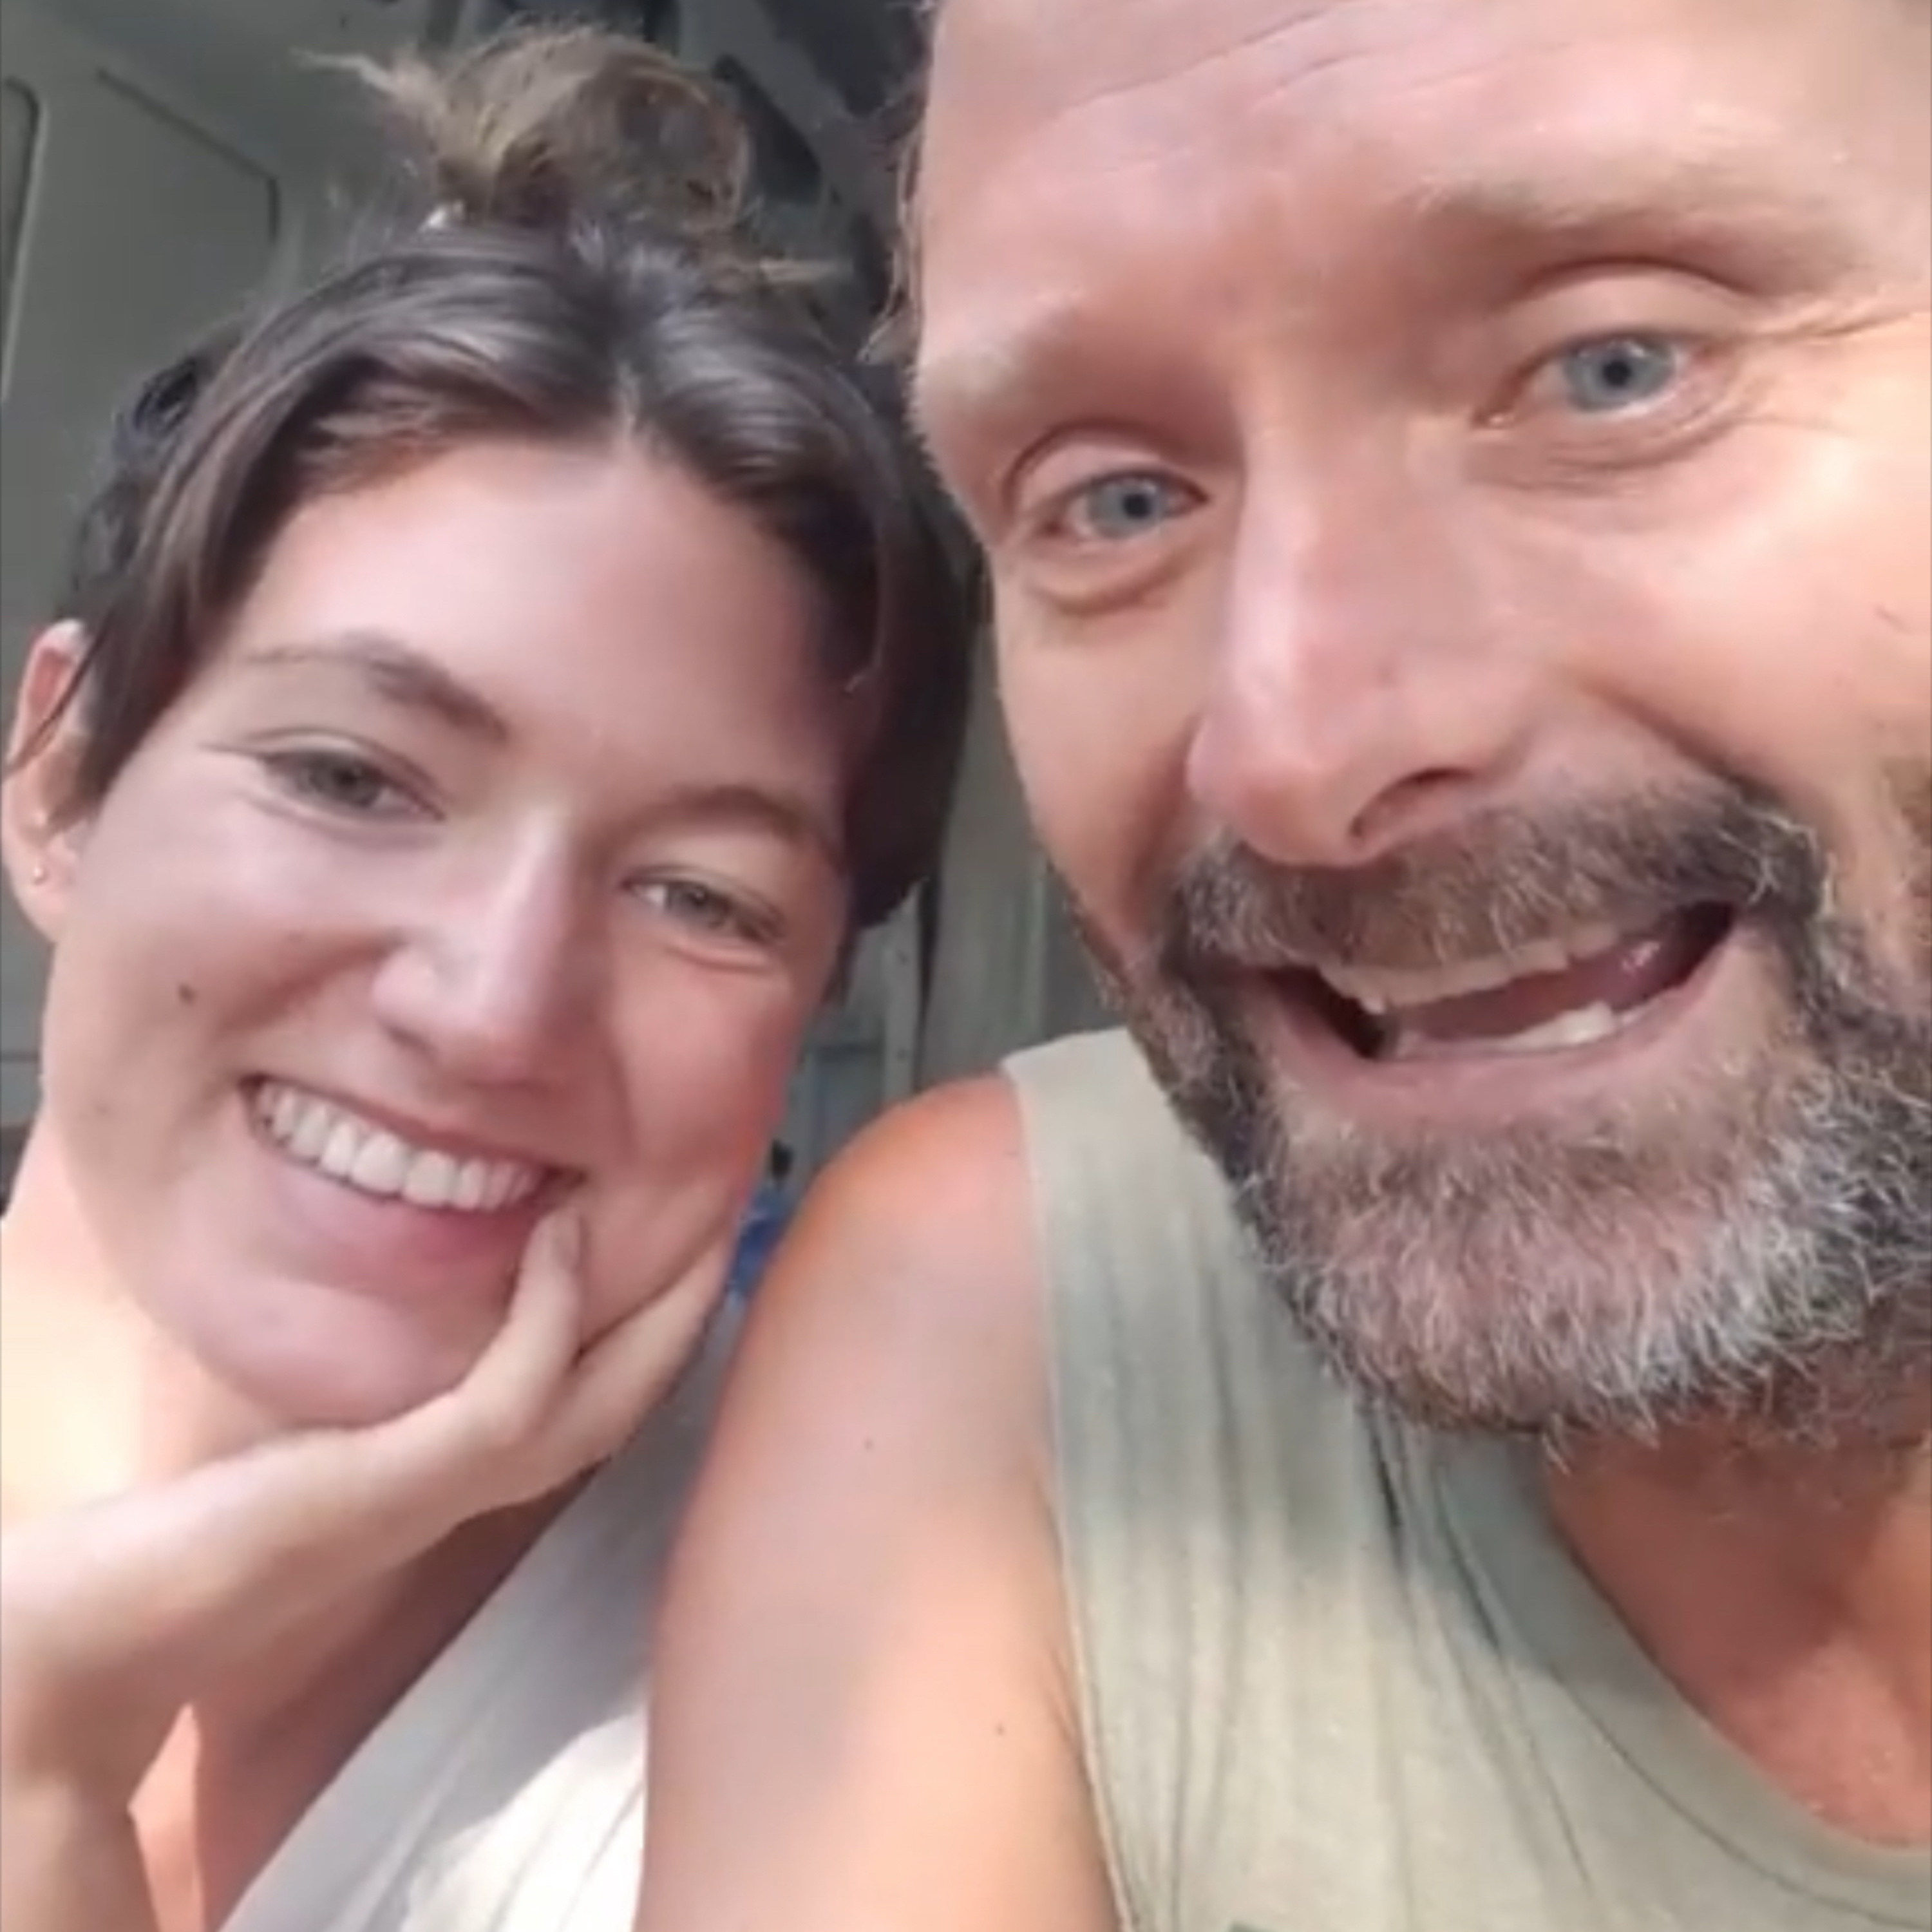 EP 26- lily & Mattie return from their journey south helping in fire zones, they gifted food & song